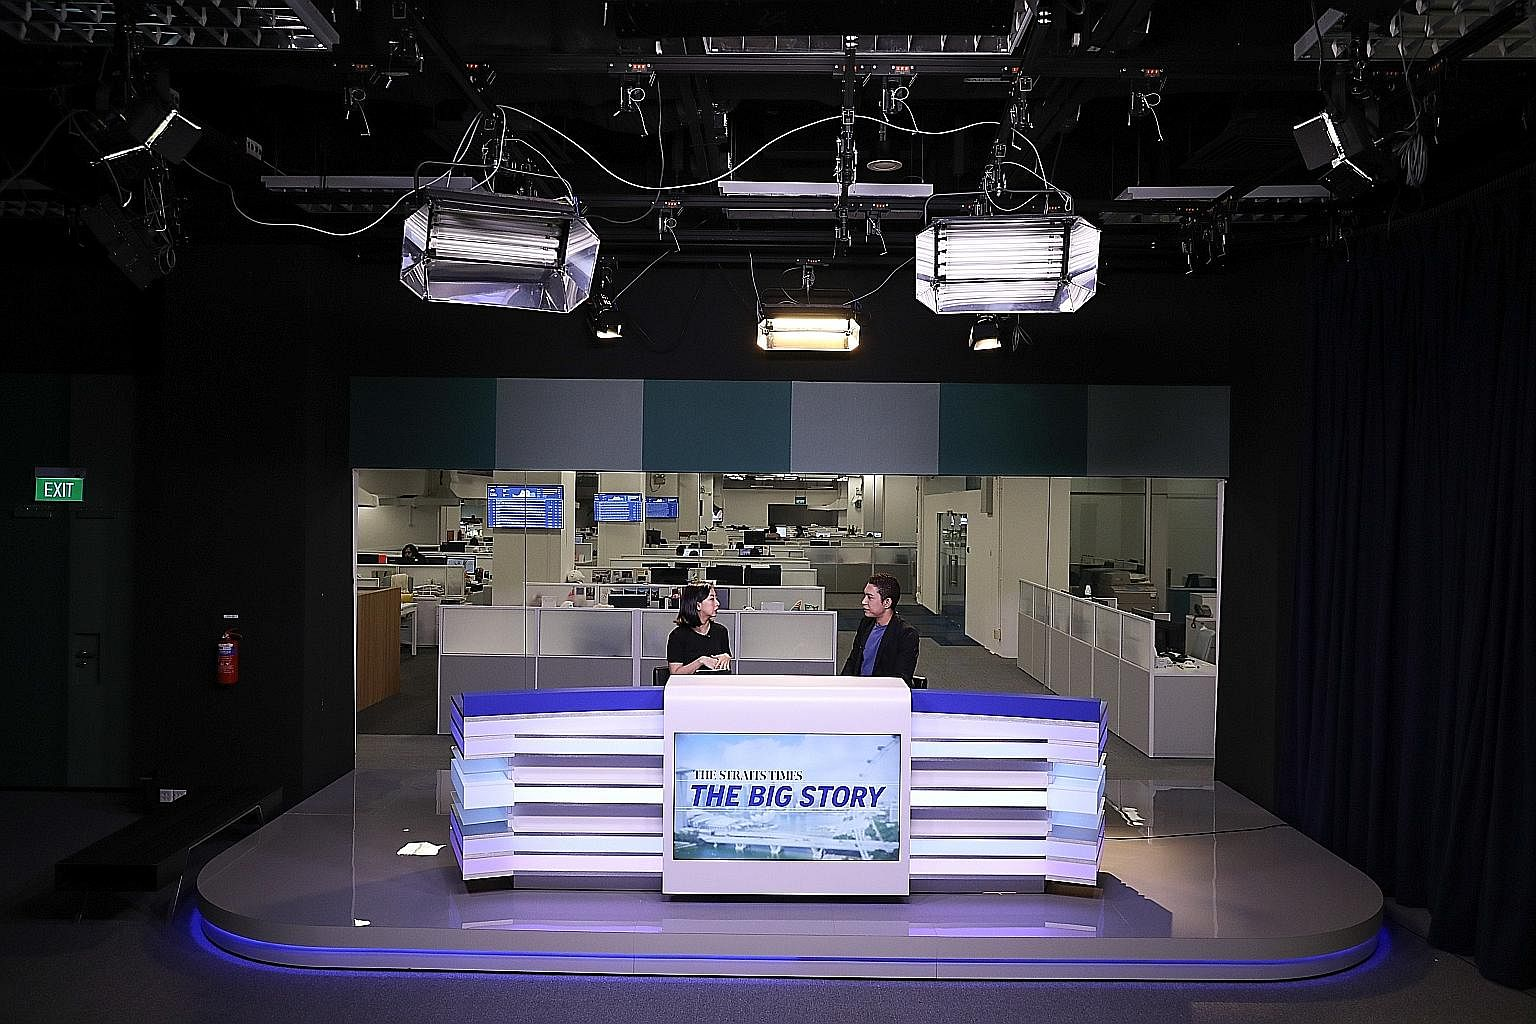 ST Life reporter Jan Lee and multimedia journalist Hairianto Diman in a rehearsal for The Big Story talk show, which will take place at 5.30pm on weekdays.